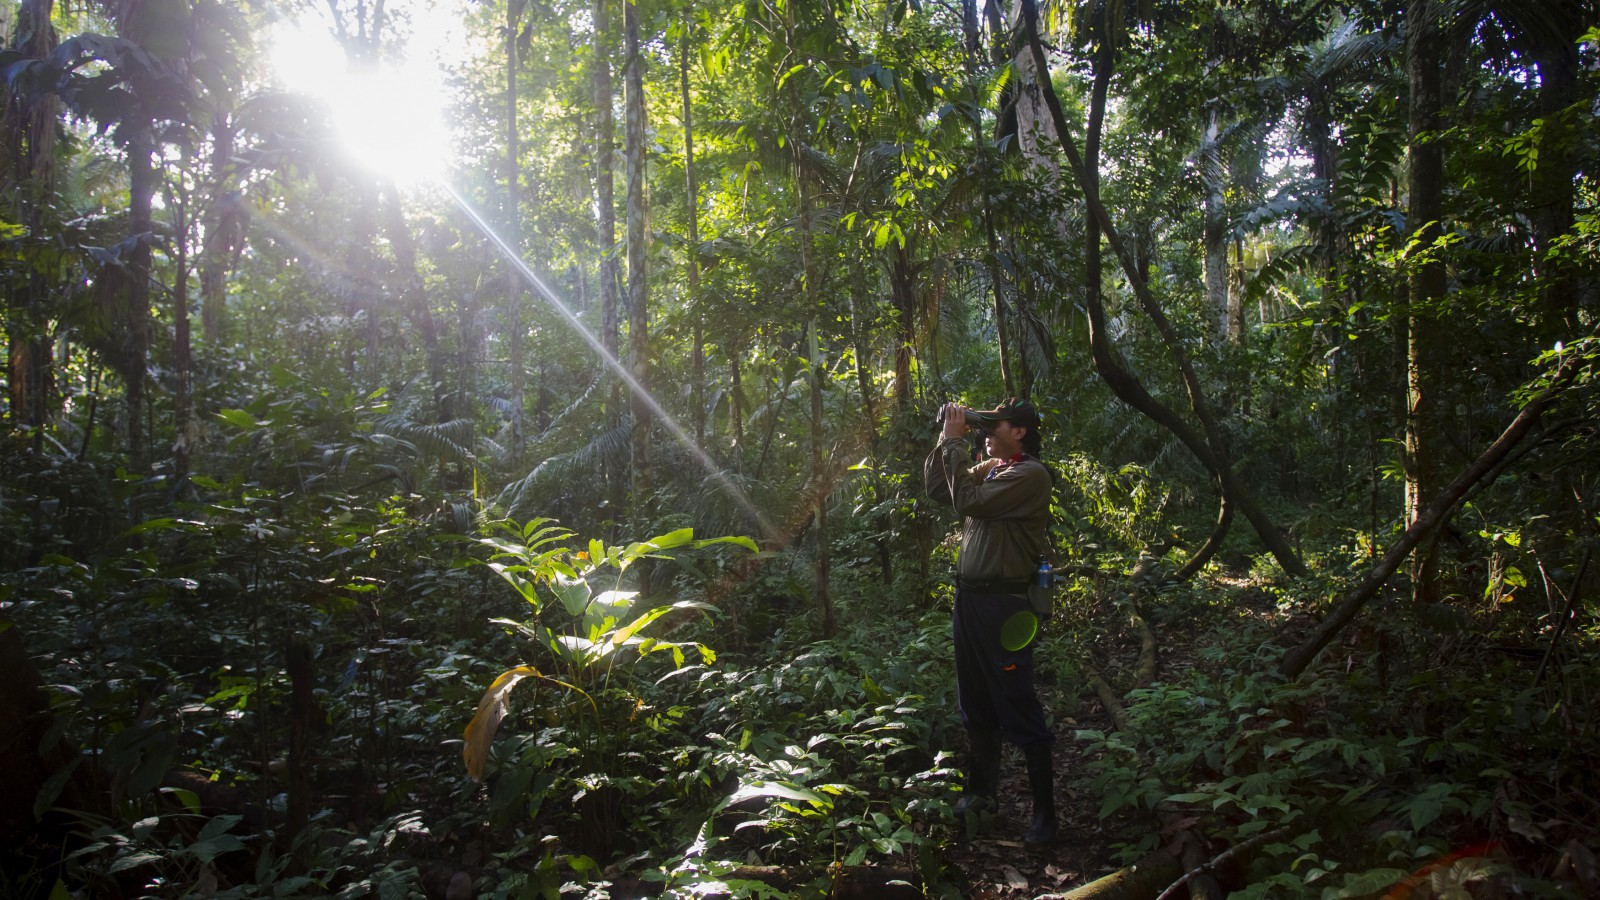 A tourist guide searches for monkeys at the Manu National Park in Peru's southern Amazon region of Madre de Dios July 17, 2014. This 1.8 million hectares reserve is the largest National Park in Peru and is the home of about 1000 birds species and 200 mammals species among other animals, as reptiles and amphibians, and has one of the highest levels of biodiversity of any park in the world, with more than 200 varieties of trees found in one hectare. Picture taken July 17, 2014. REUTERS/Enrique Castro-Mendivil (PERU - Tags: ENVIRONMENT TRAVEL SOCIETY TPX IMAGES OF THE DAY) - RTR40FT3